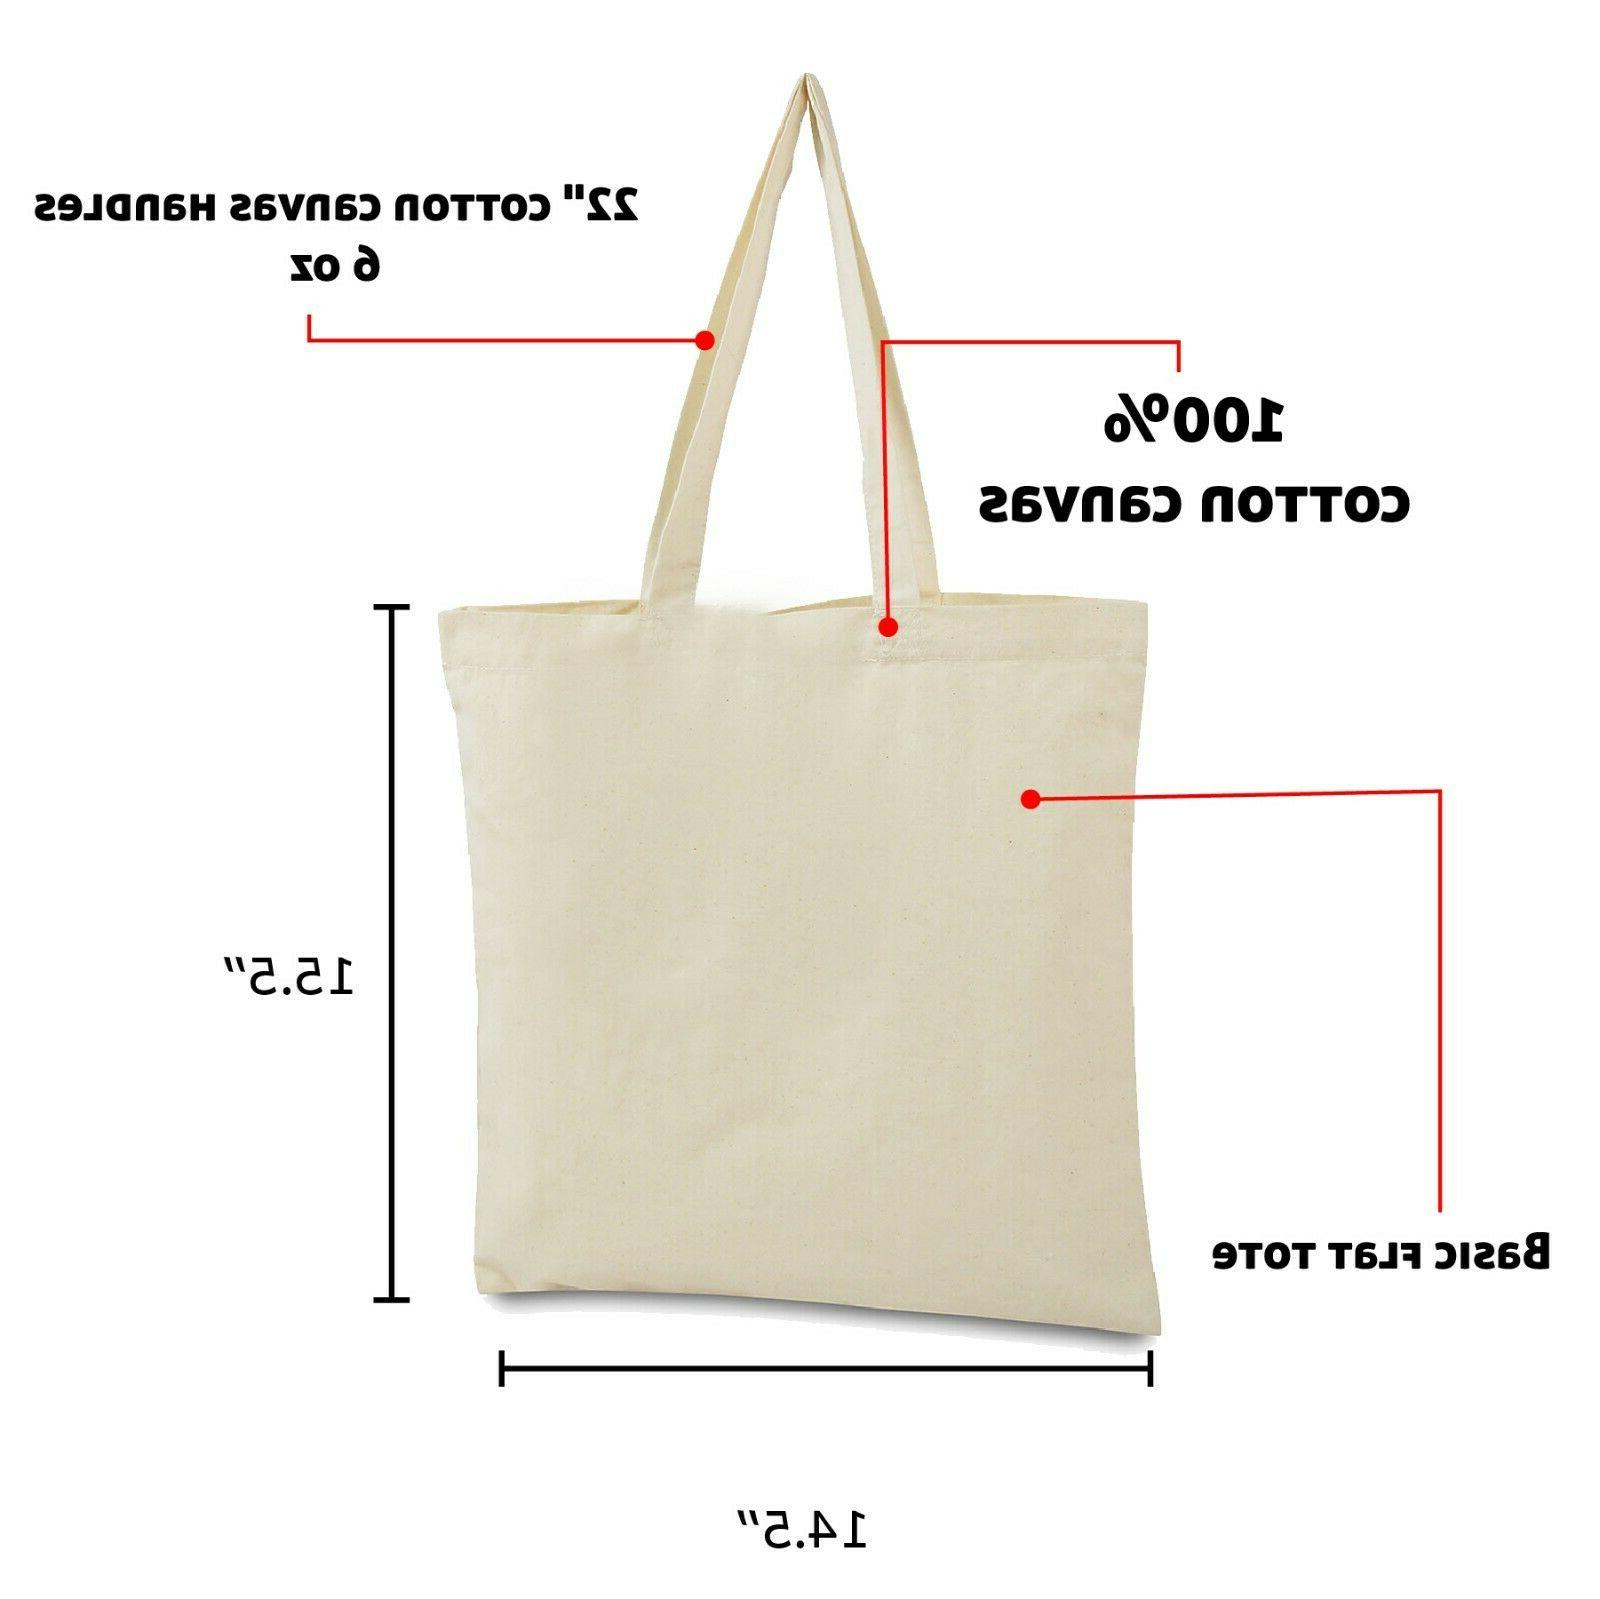 New Tote Totes, Reusable